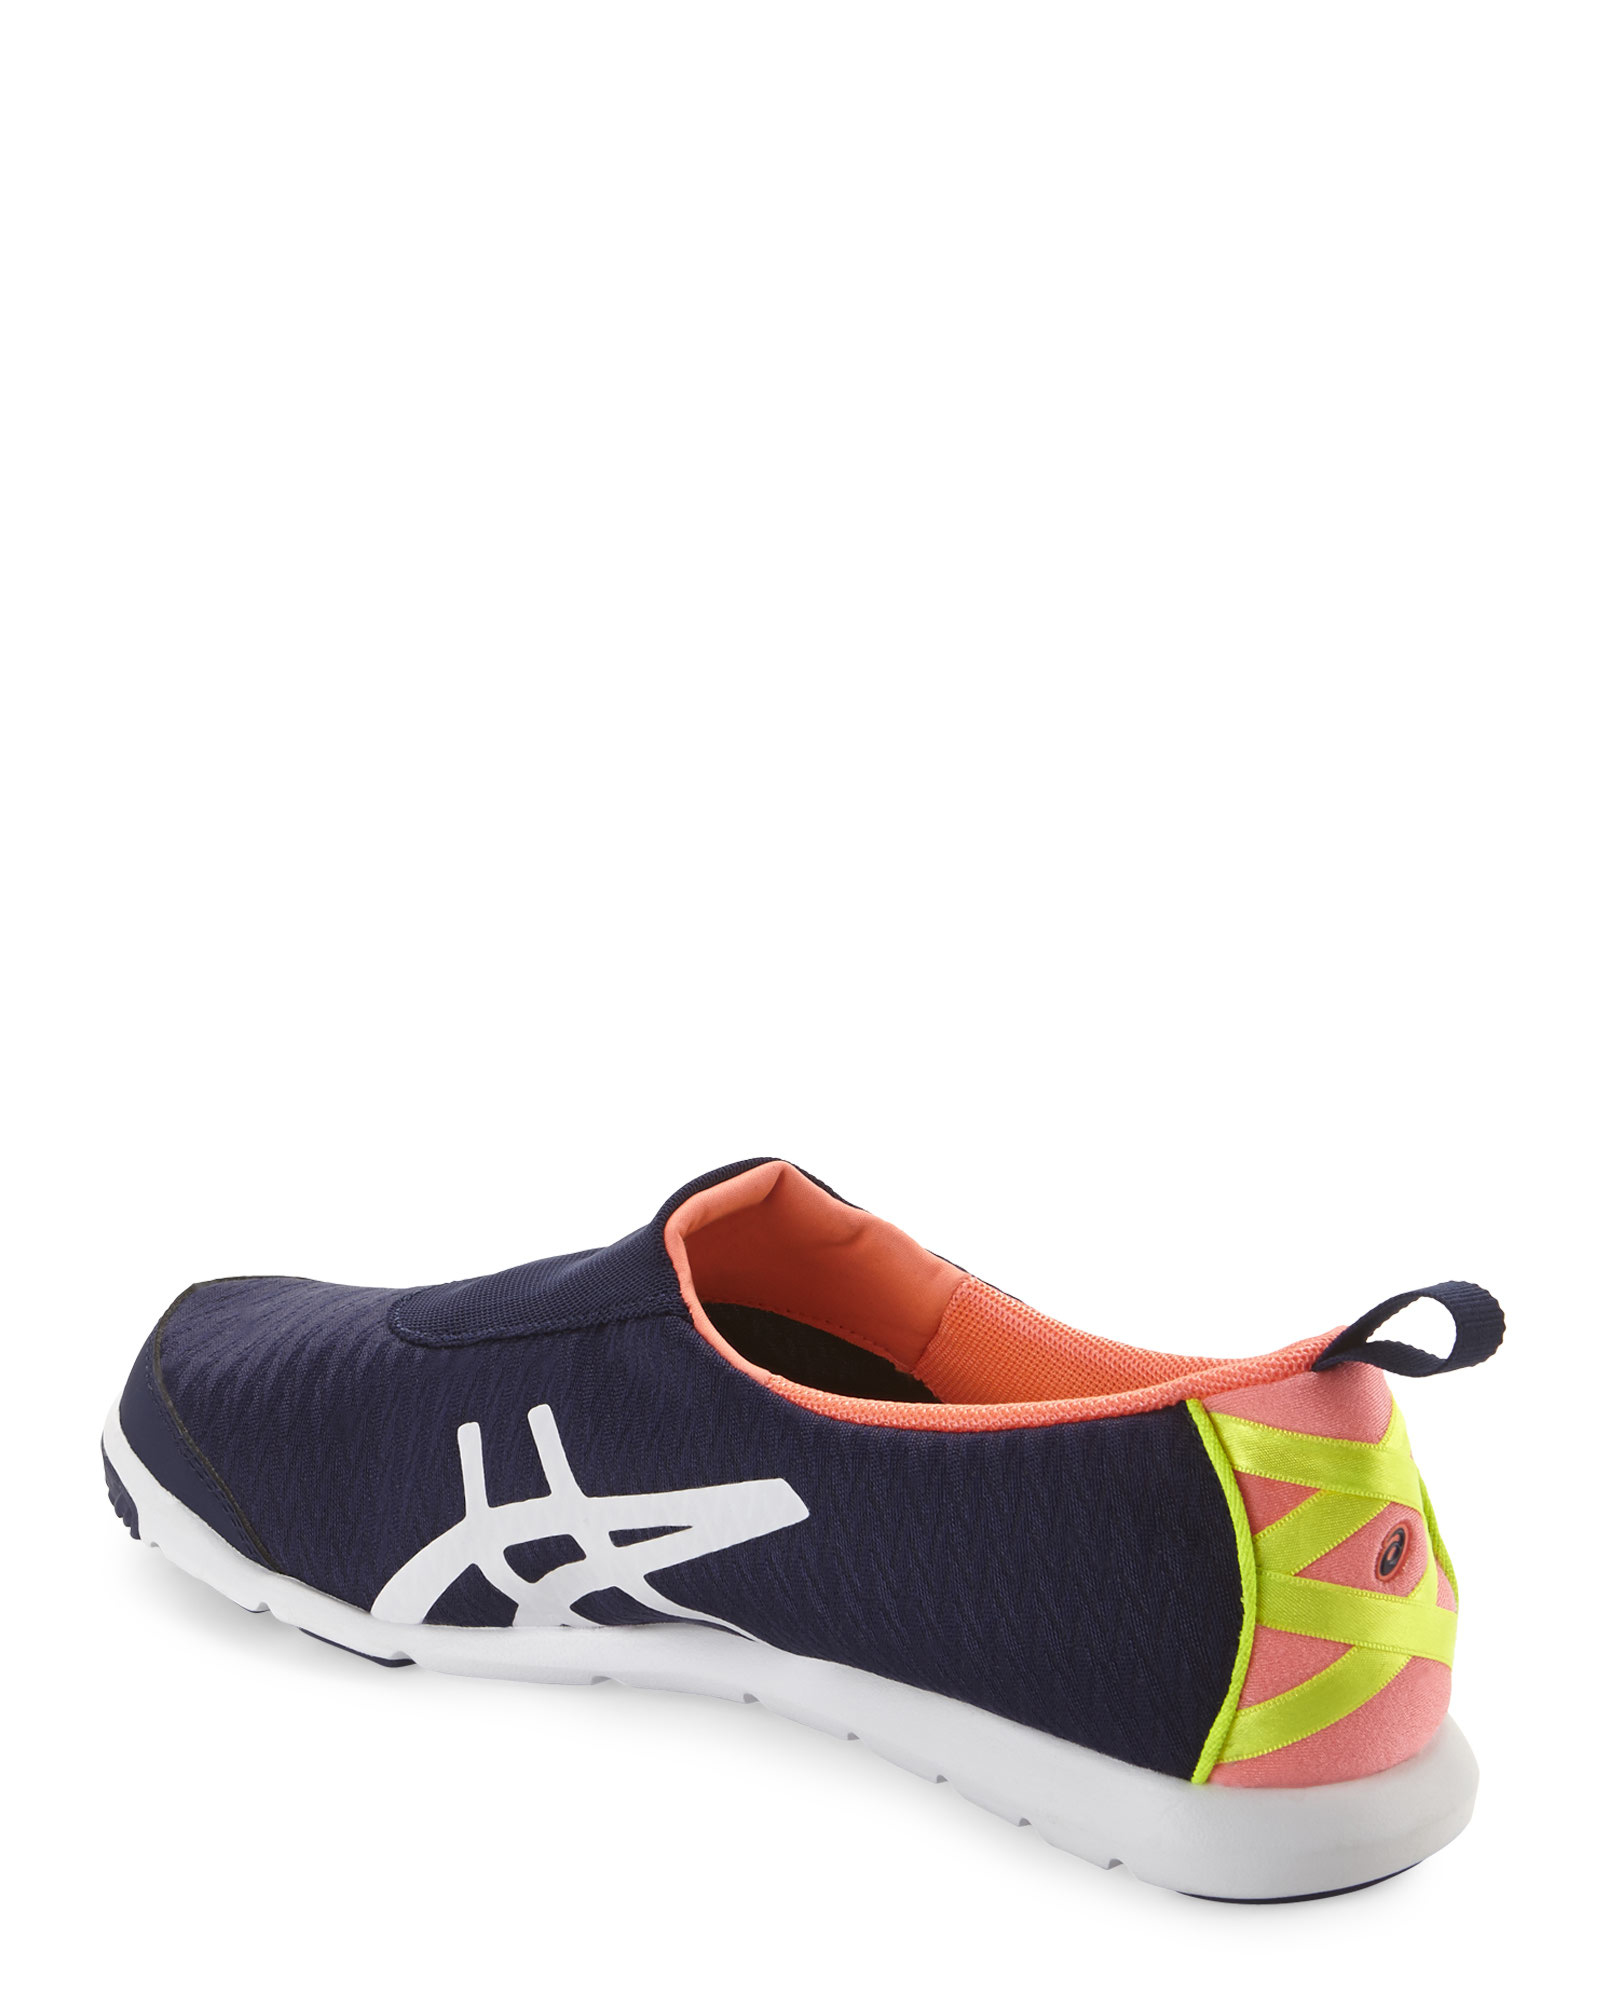 f9d0d6113a77 Slip in Blue Metrolyte Asics amp  On Lyst Navy Sneakers Coral 8FXazq